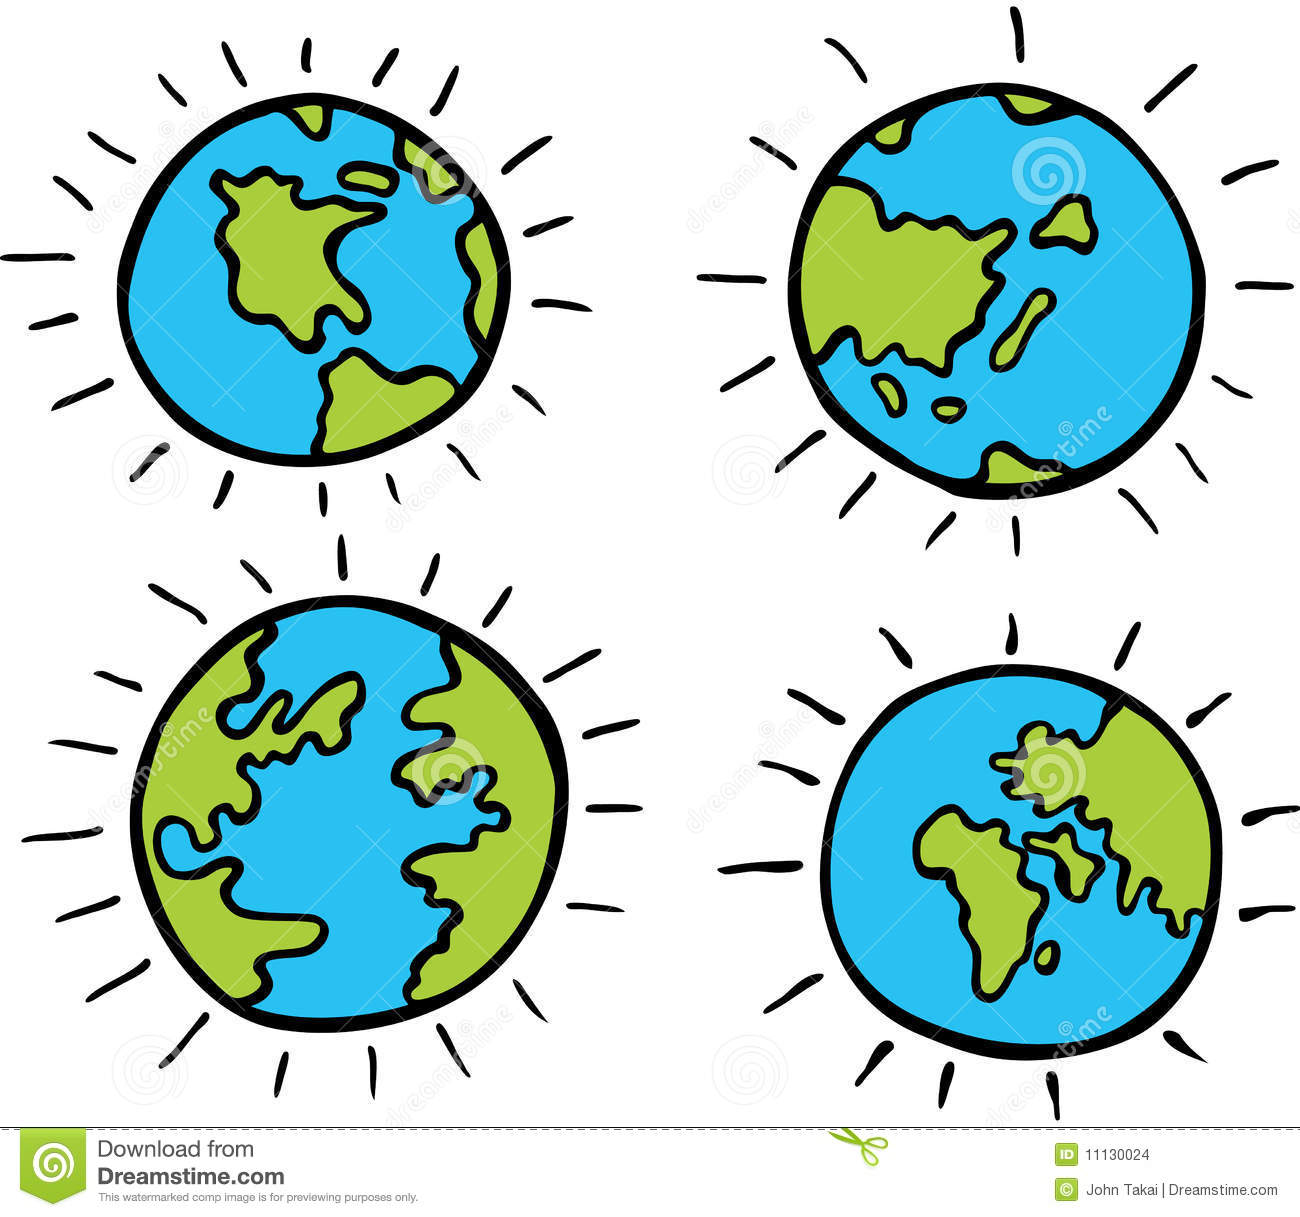 Set of cartoon images of planet earth - different continents.